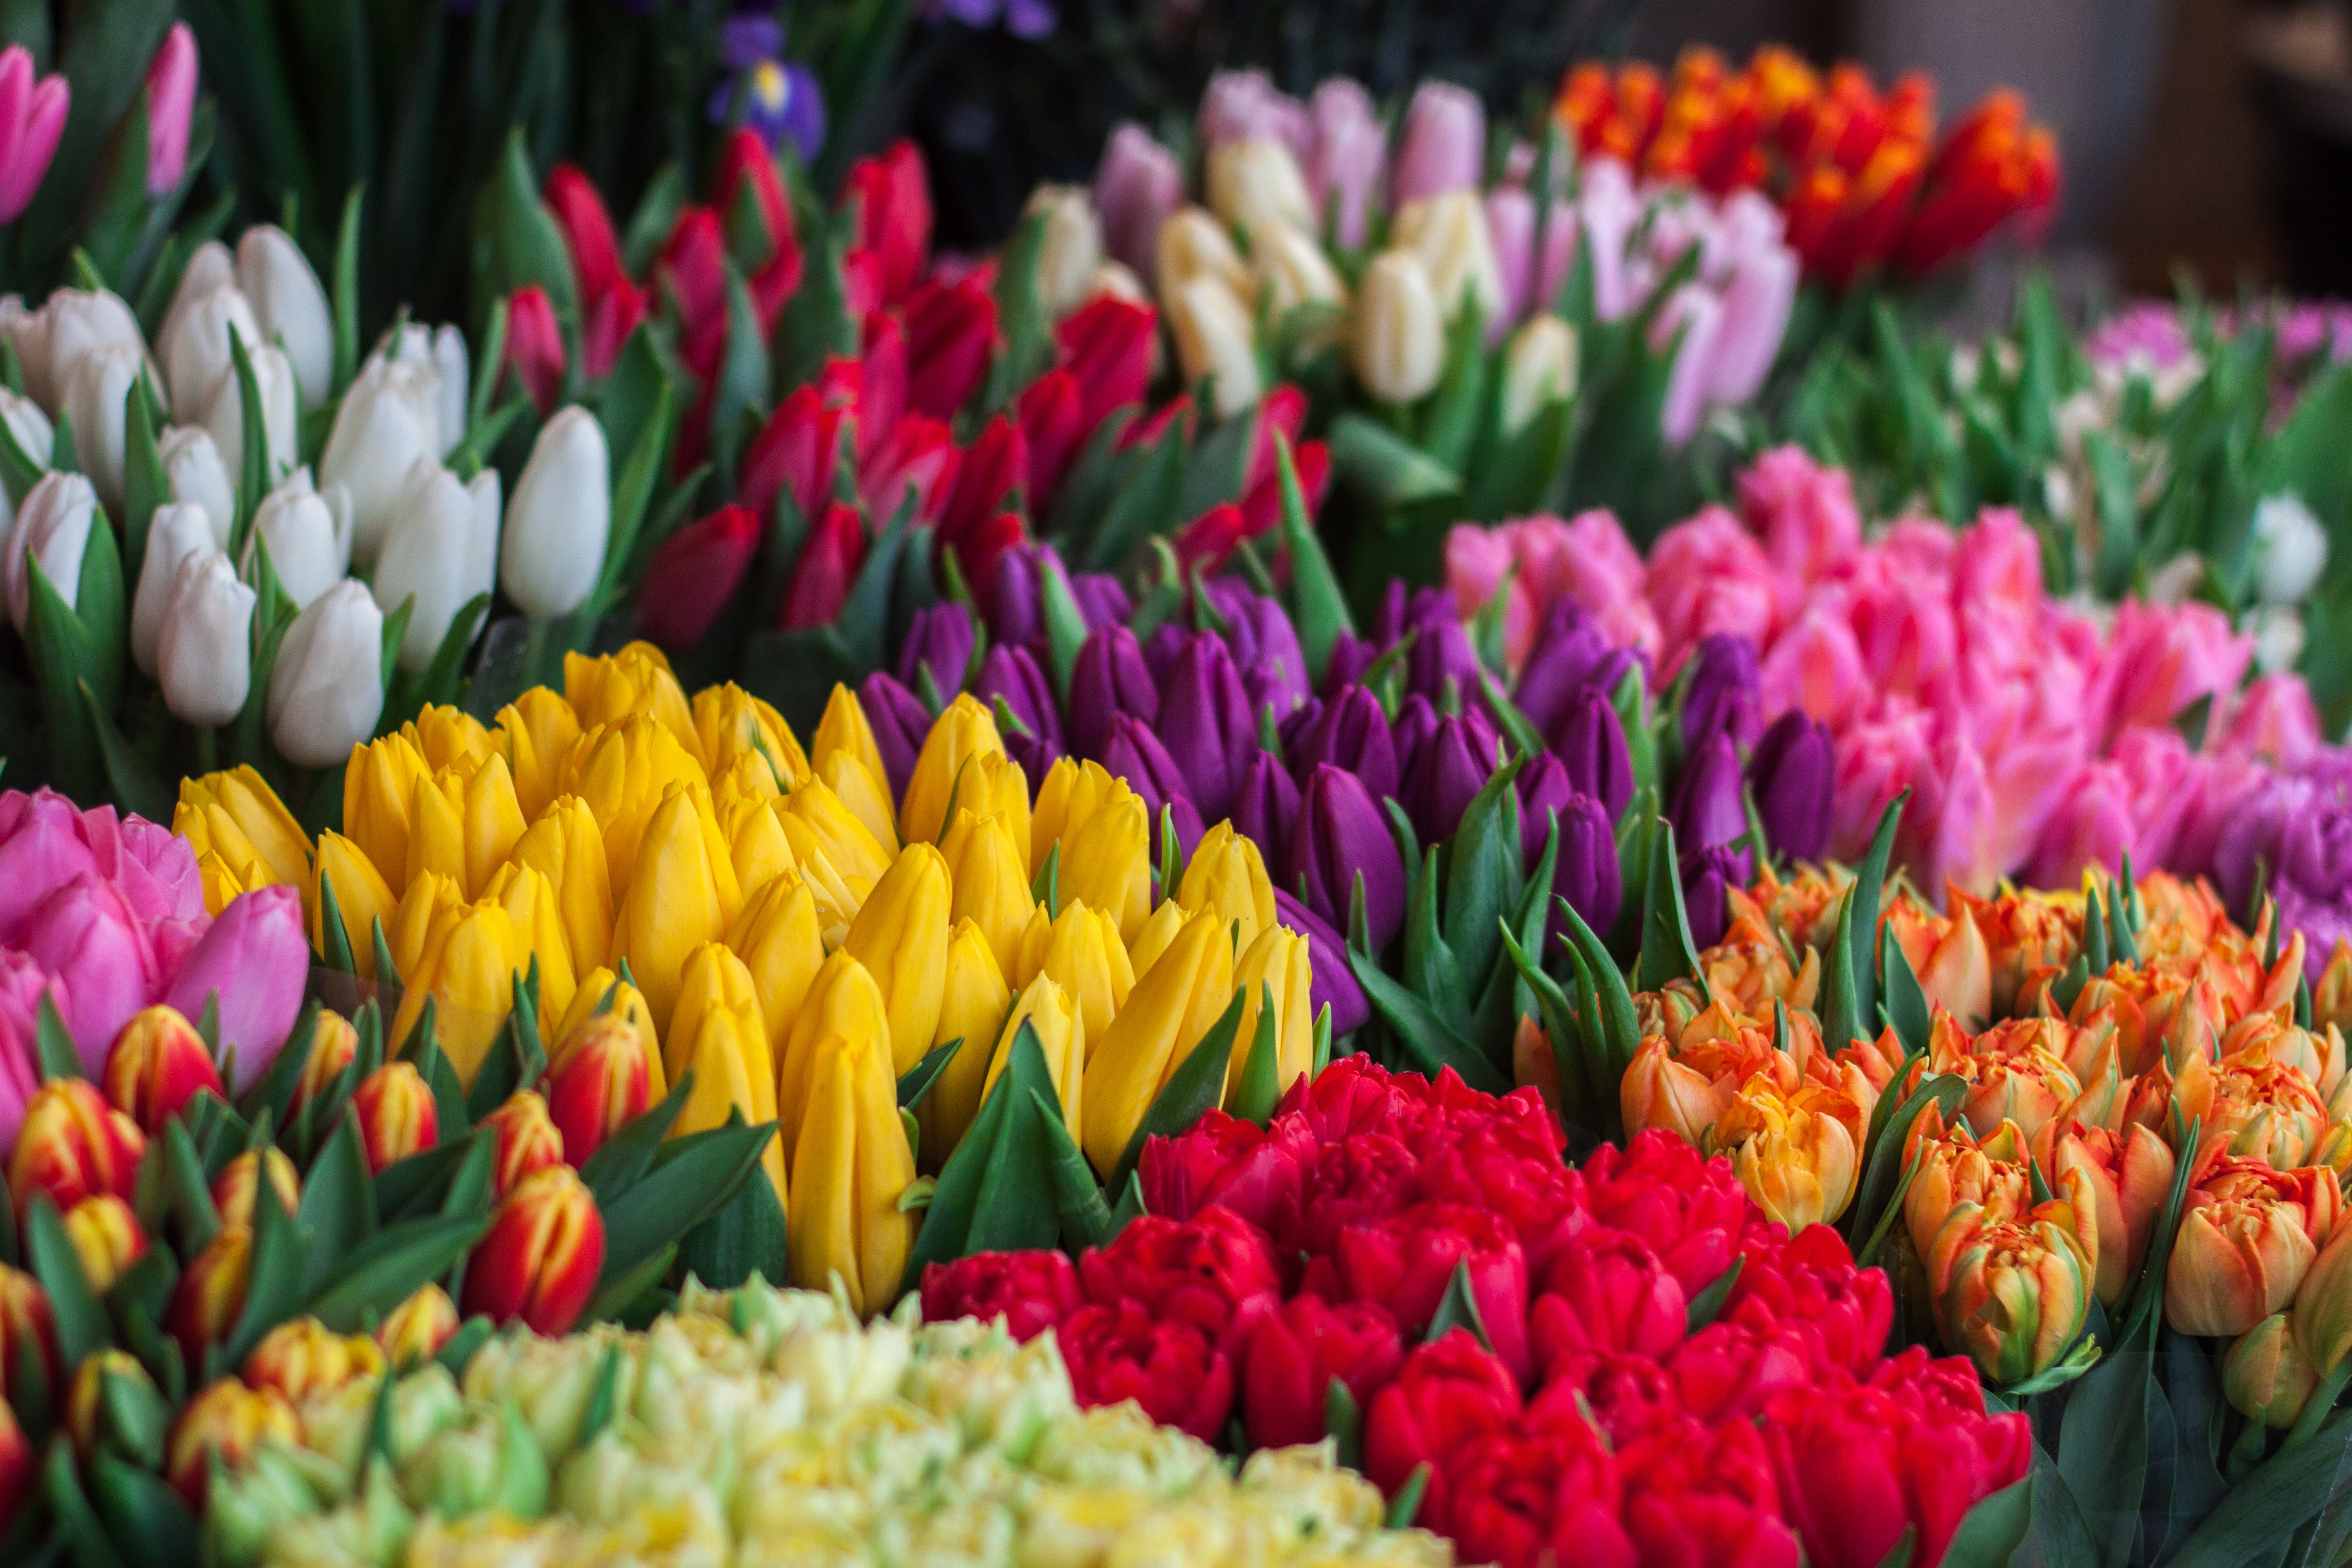 Colorful tulip bouquets at flower stall in Spring, Strysky I rynok